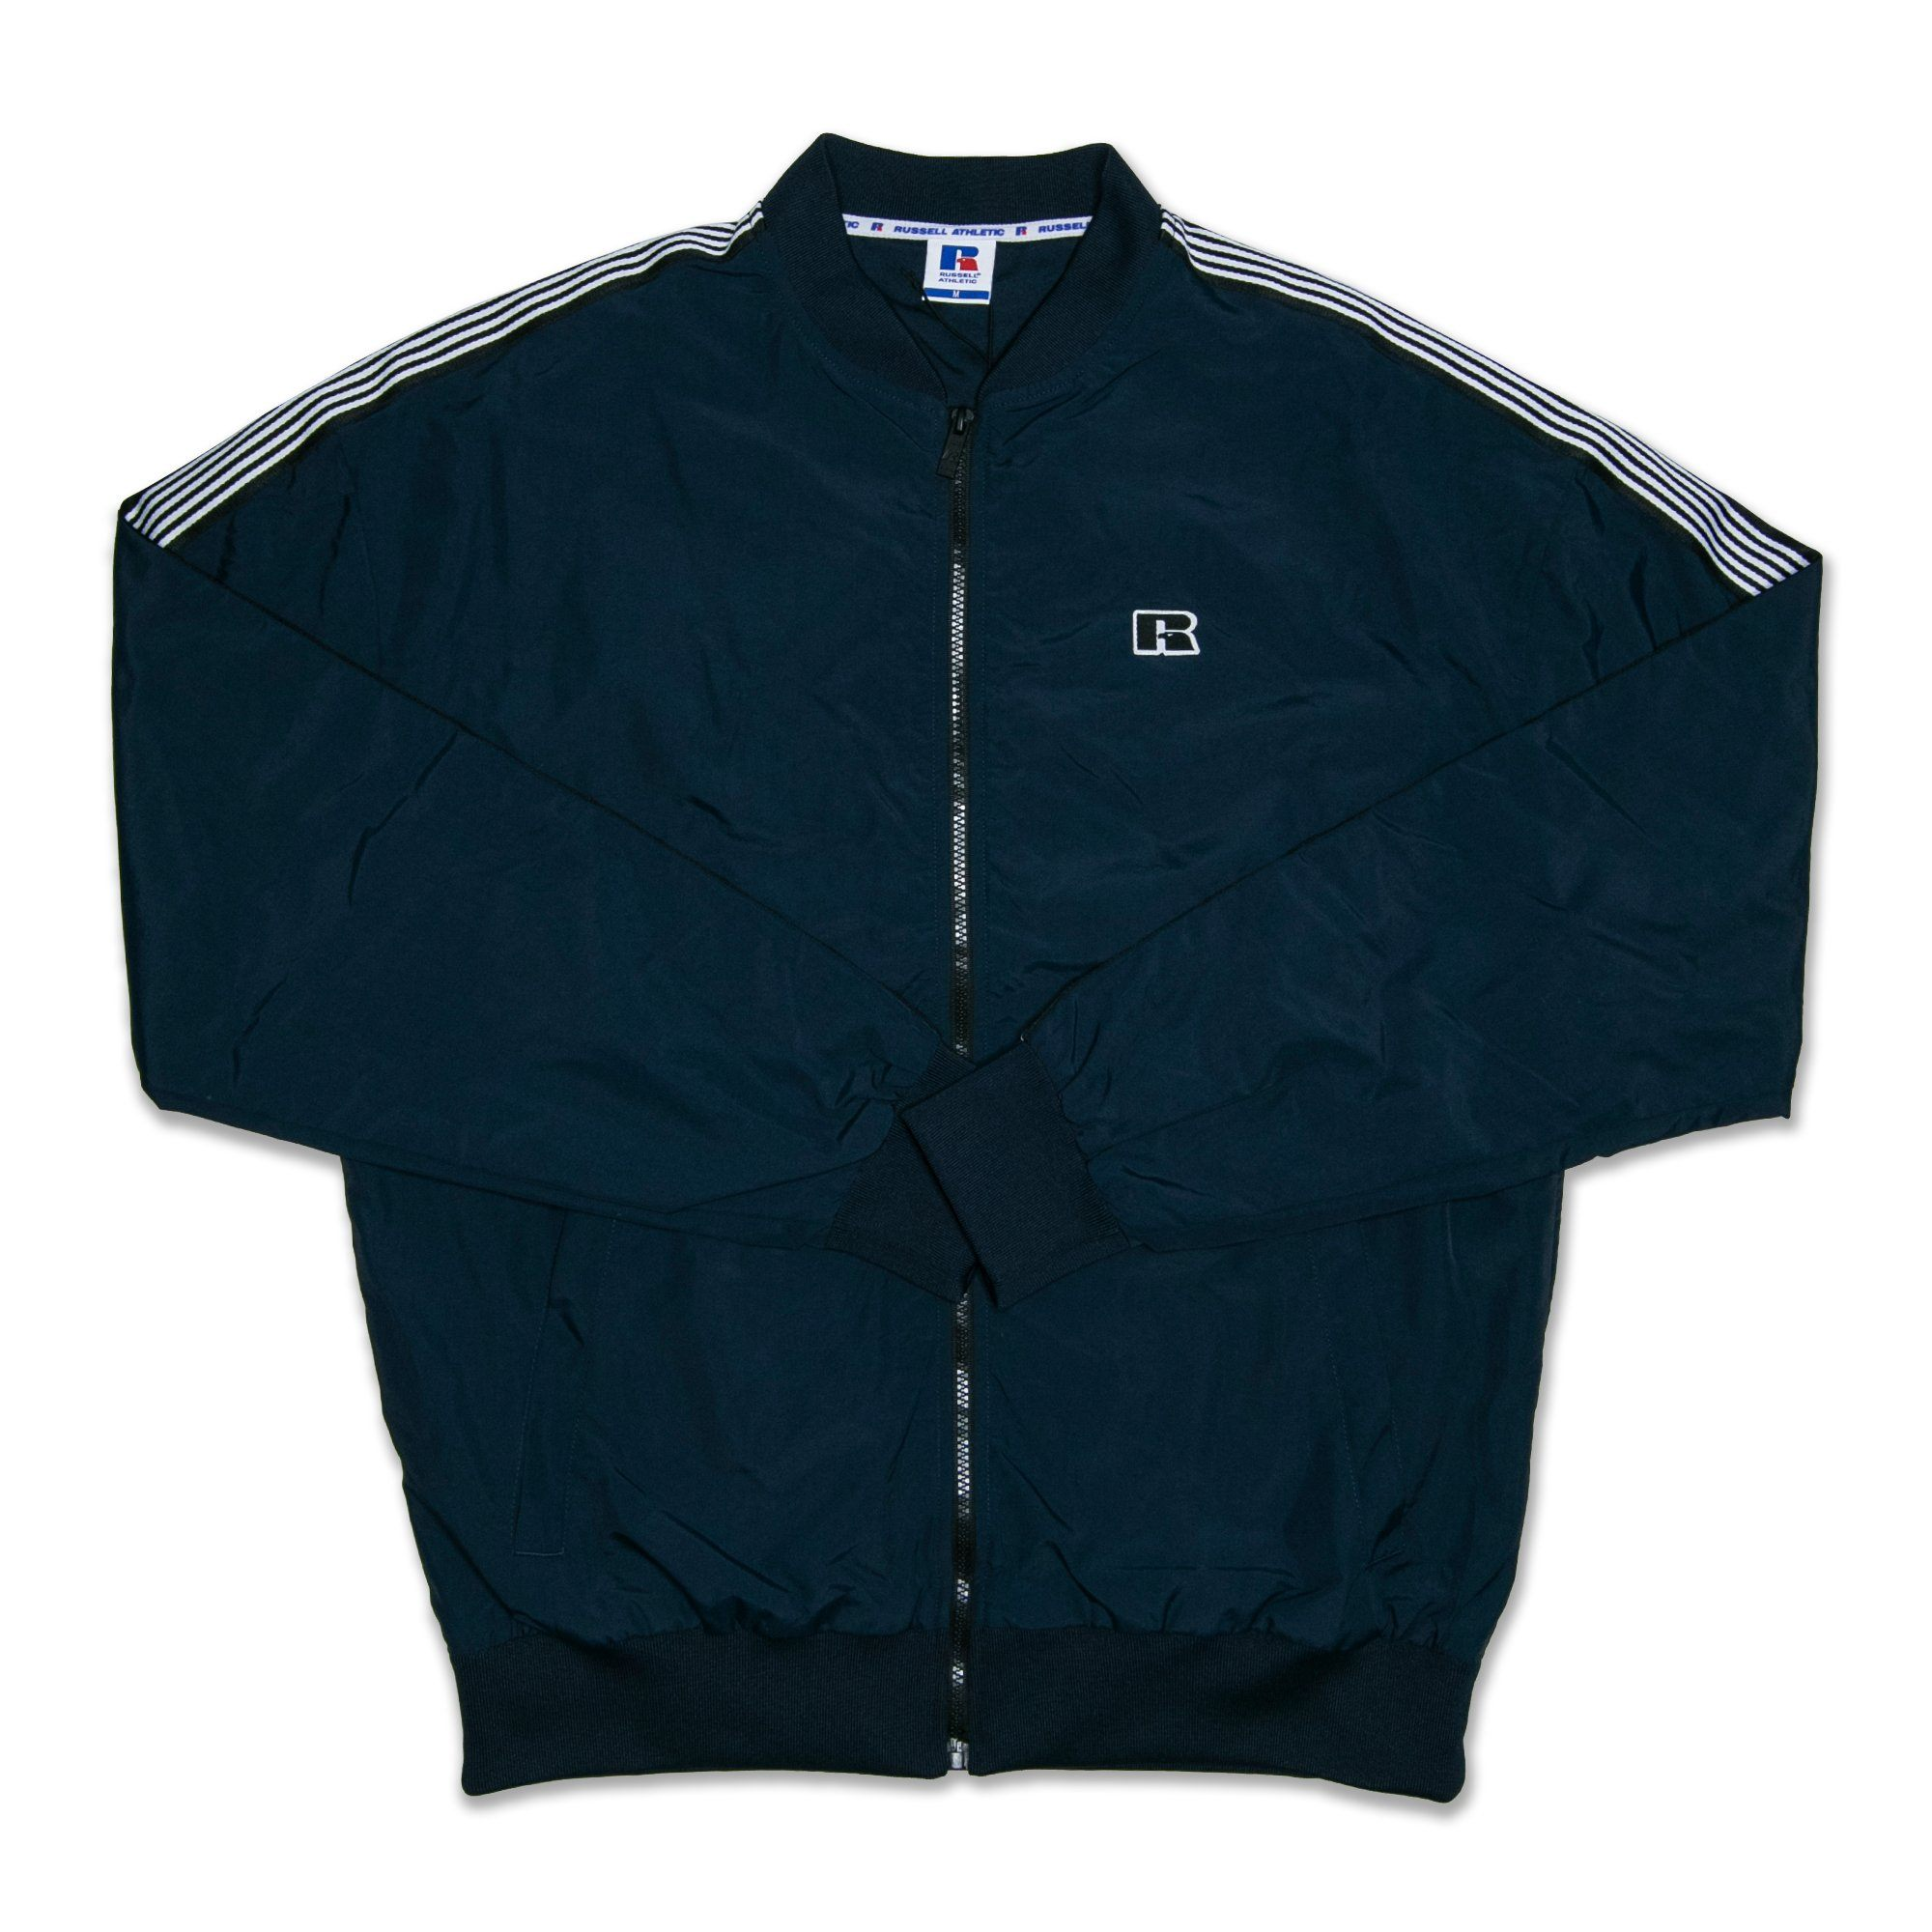 Russell Mens Iconic Retro Bomber Jacket - Carbon SP-ApparelJackets-Mens Designworks